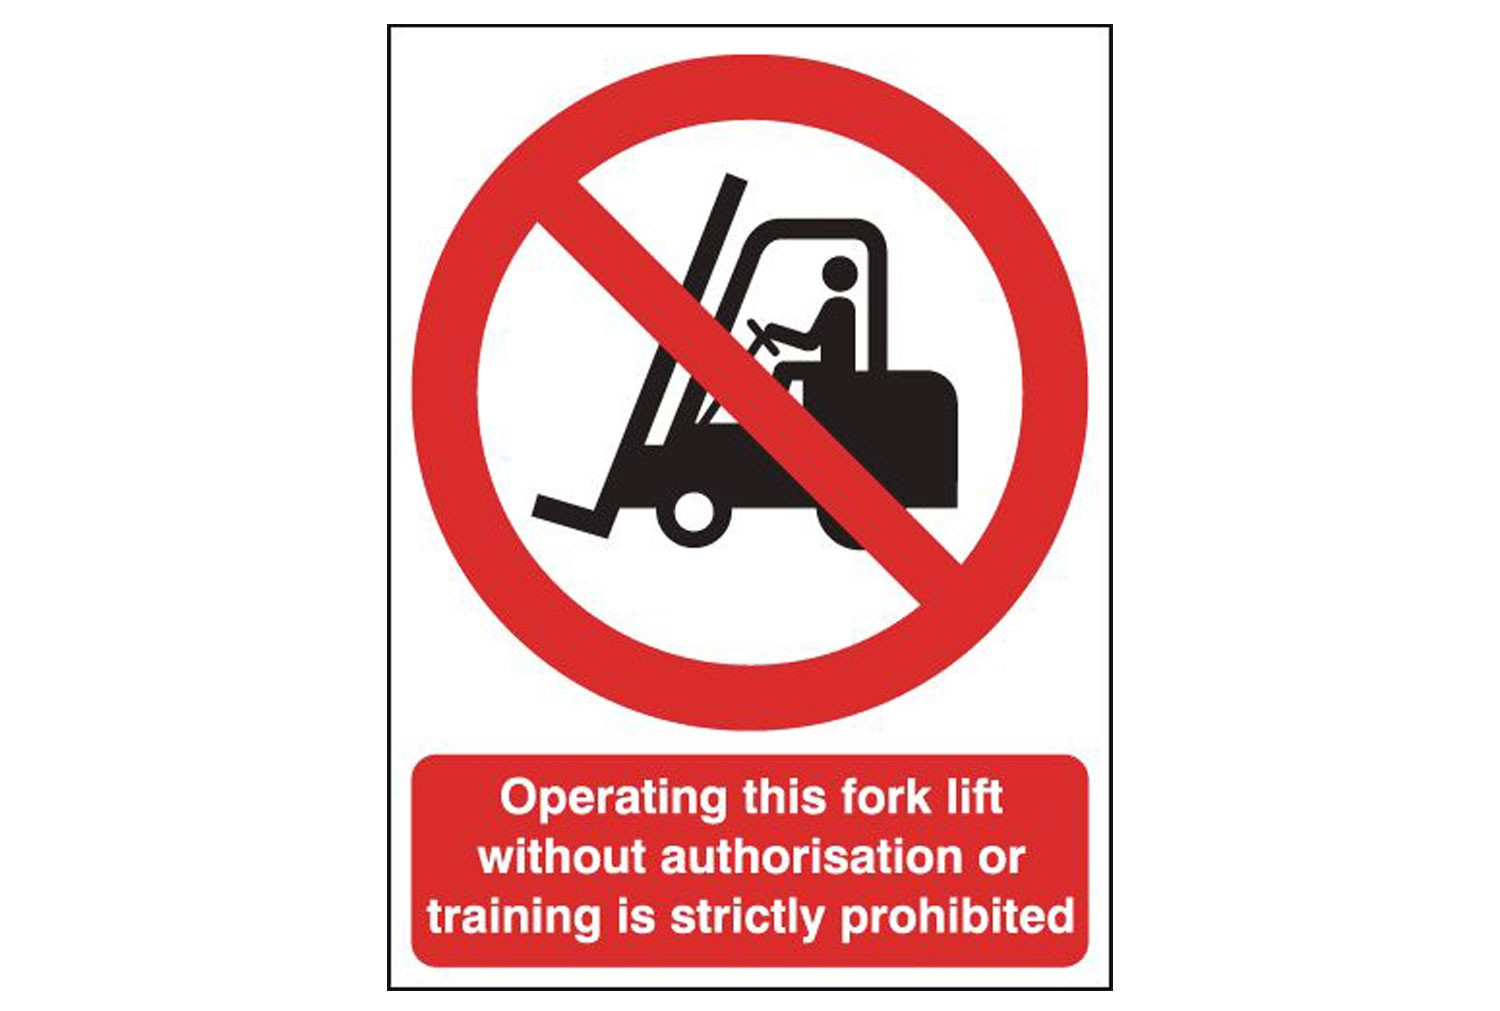 Operating This Fork Lift Without Authorisation Is Prohibited Sign